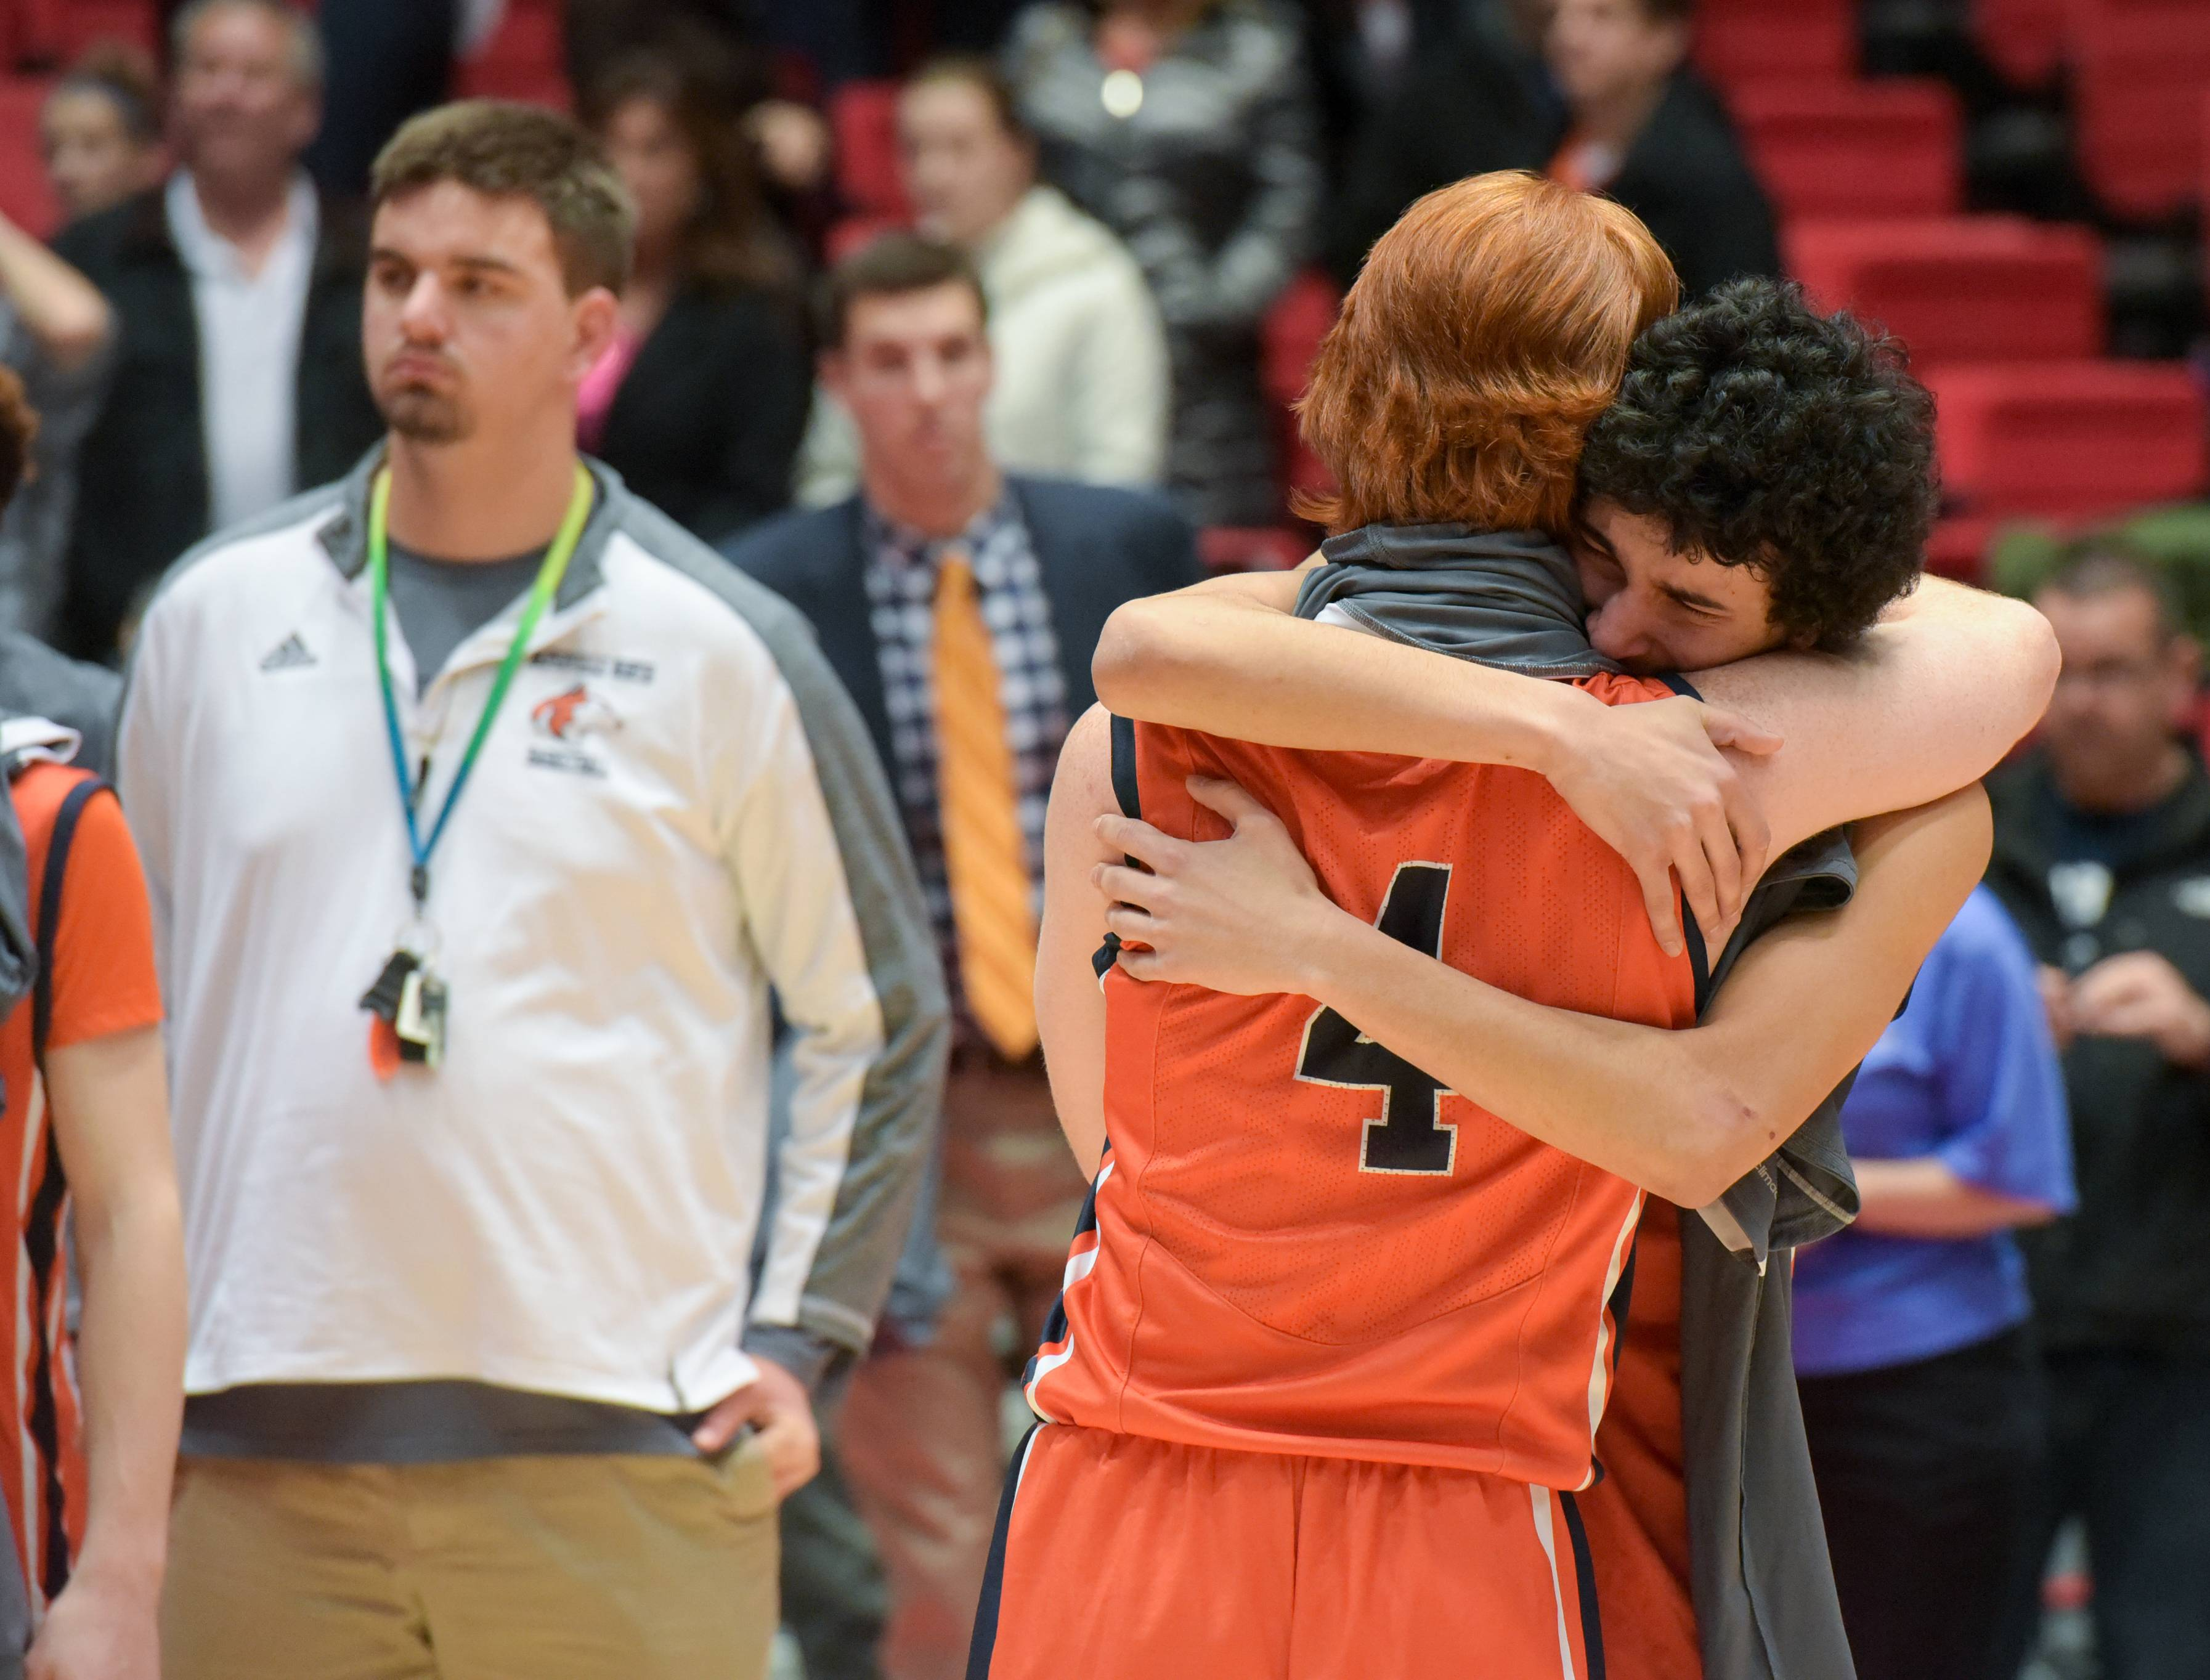 Naperville North's Scott Smith and Youcef Merabet console each other after the Huskies 83-57 loss to against the Bolingbrook during the Class 4A supersectional boys basketball game at Northern Illinois University on March 14, 2017.